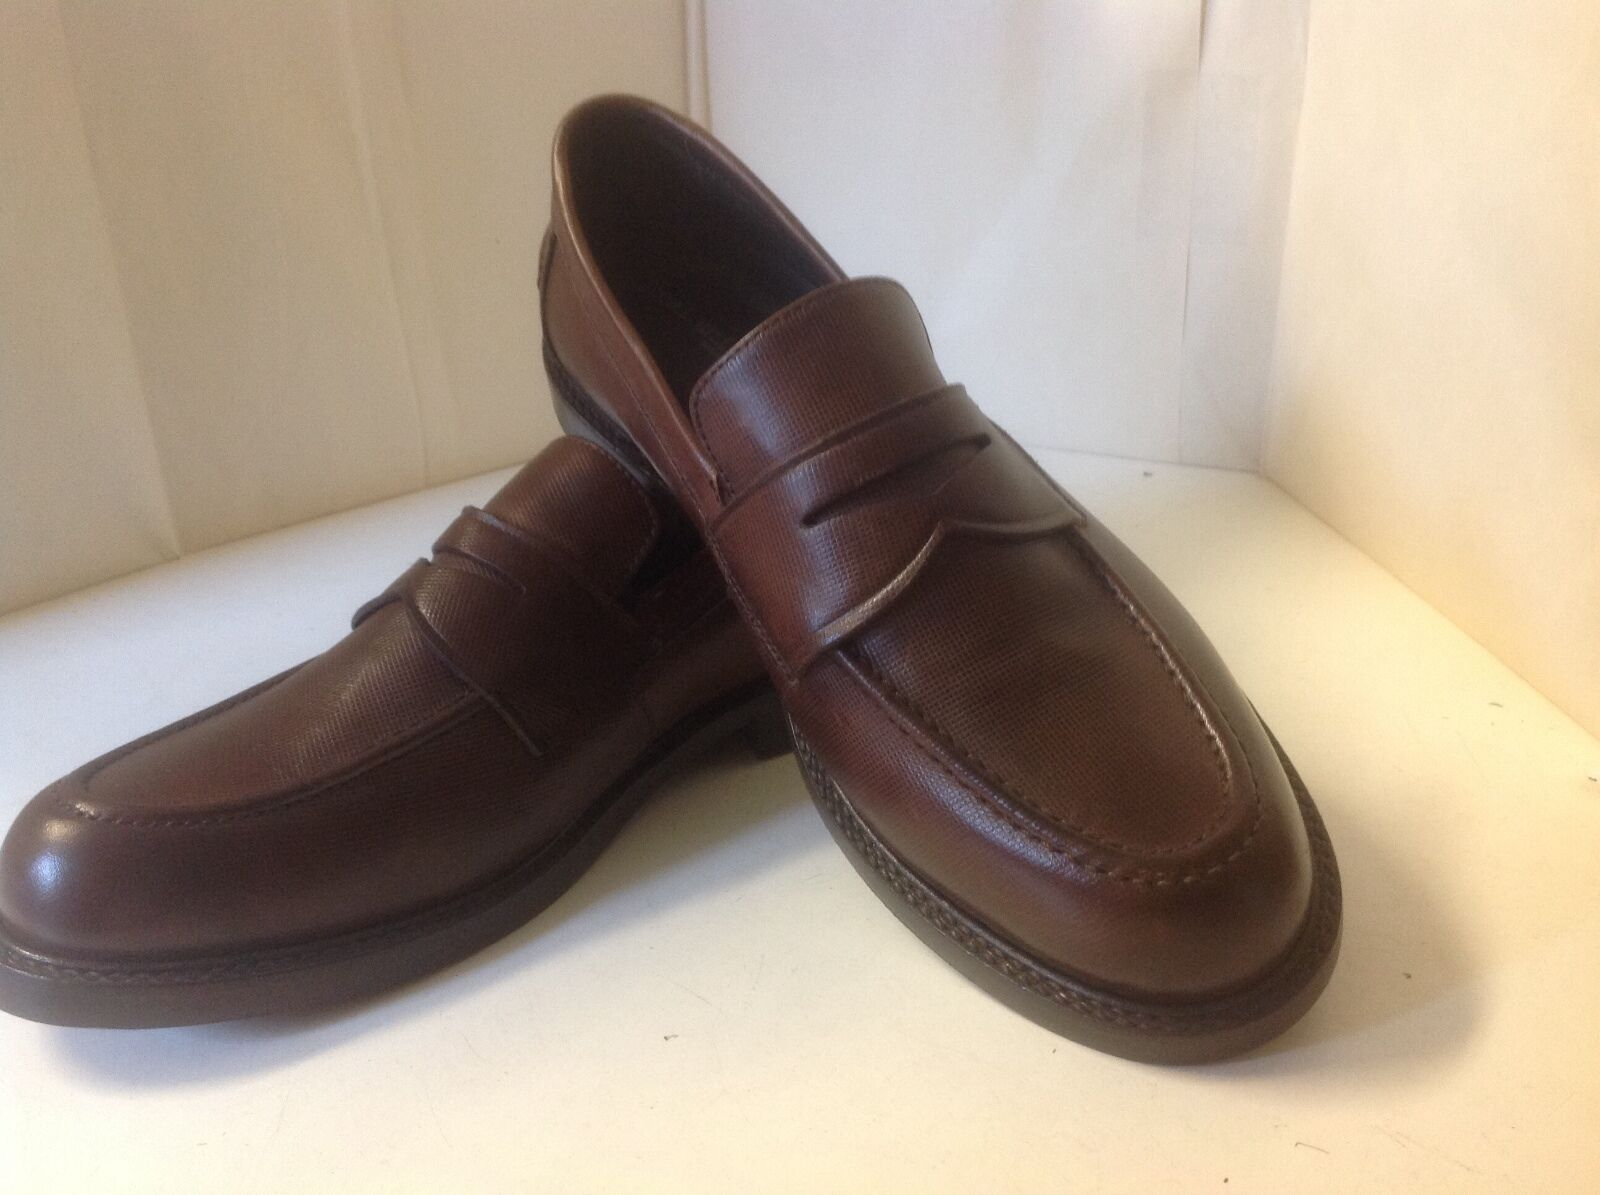 Local Uniform Leather Loafers New Brown 8 1/2 M Made in Brazil Shoes Men